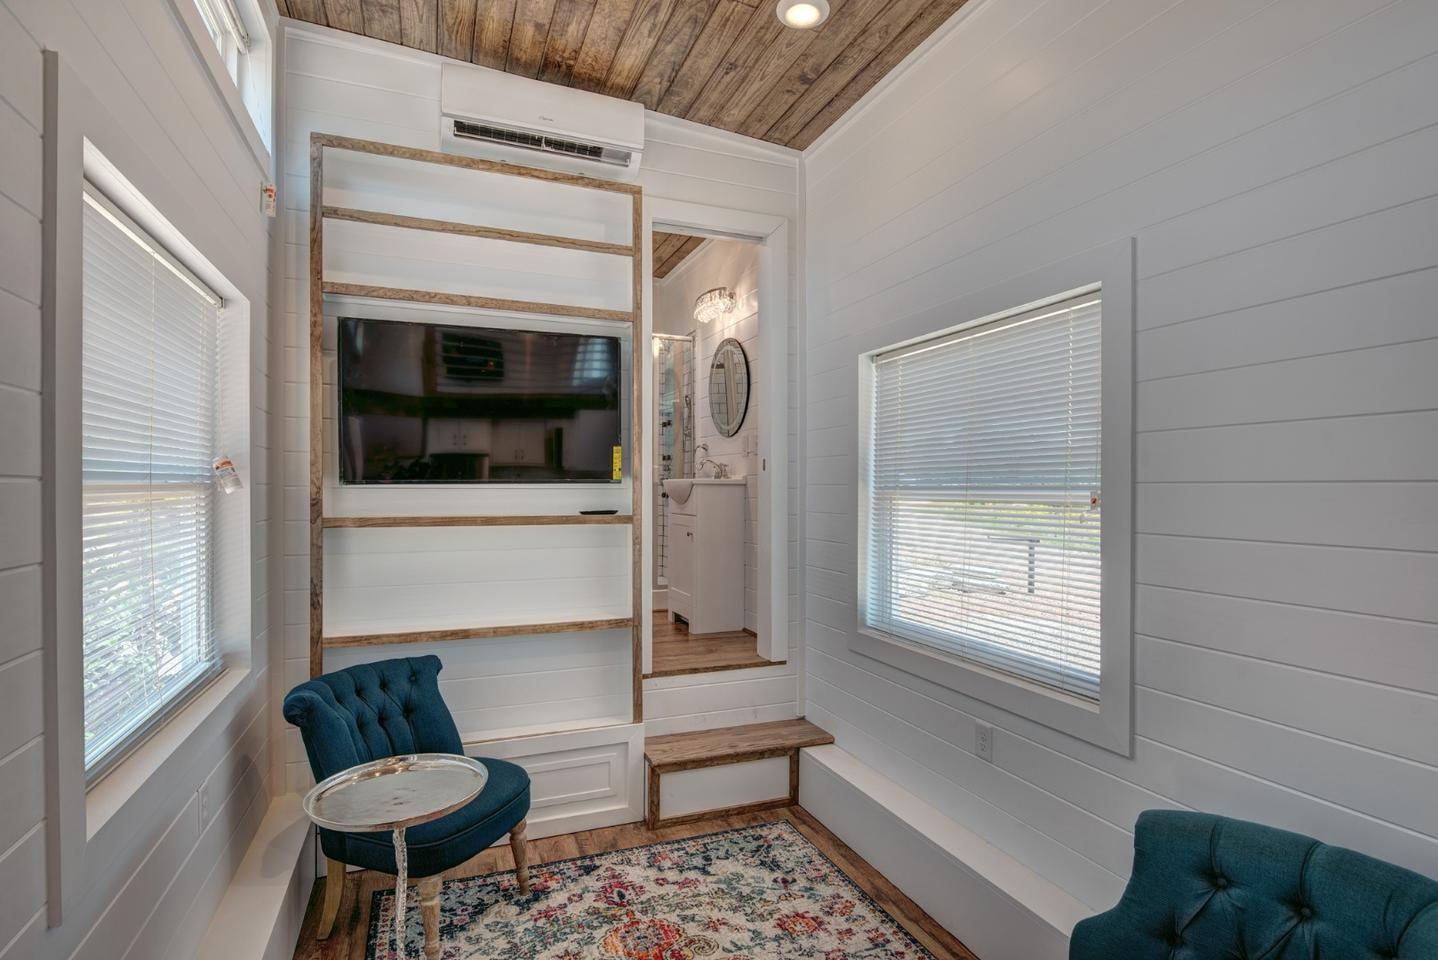 The high ceiling throughout the Journey tiny house gives this luxurious pint-sized dwelling a relatively spacious interior